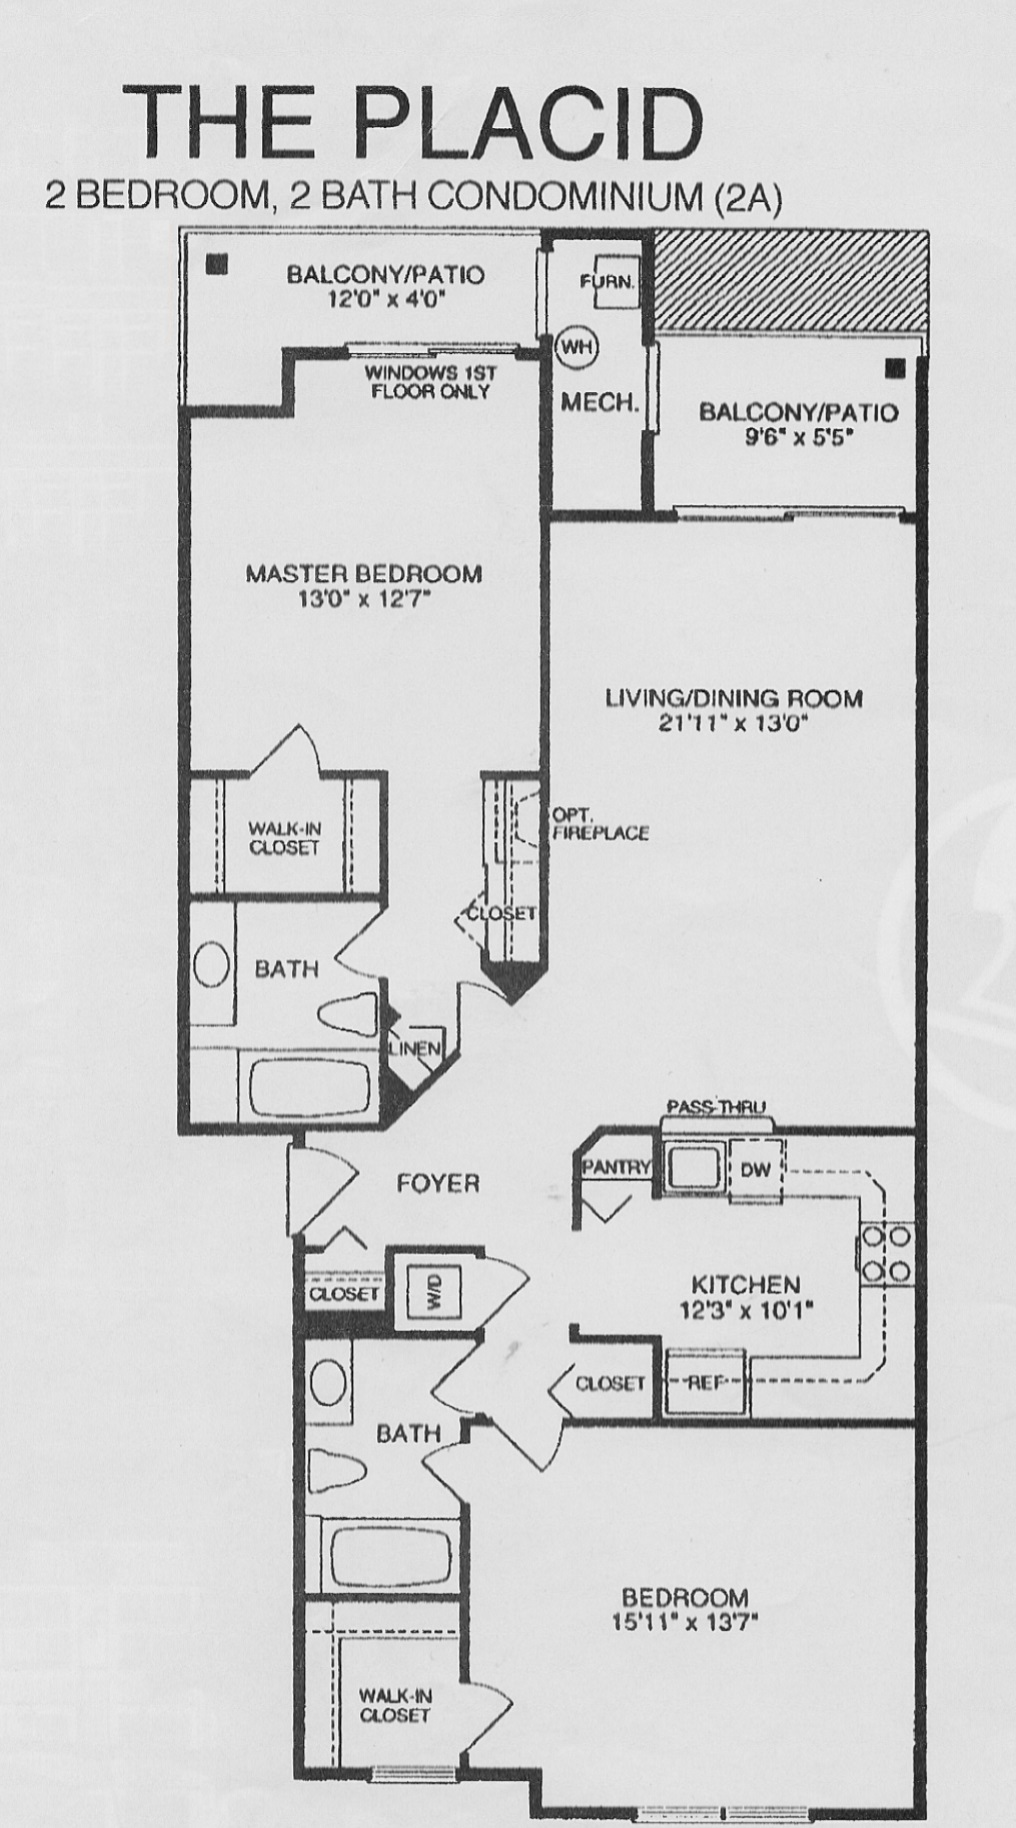 Lakeshore condominium floor plans lakeshore condominium for Condominium floor plan